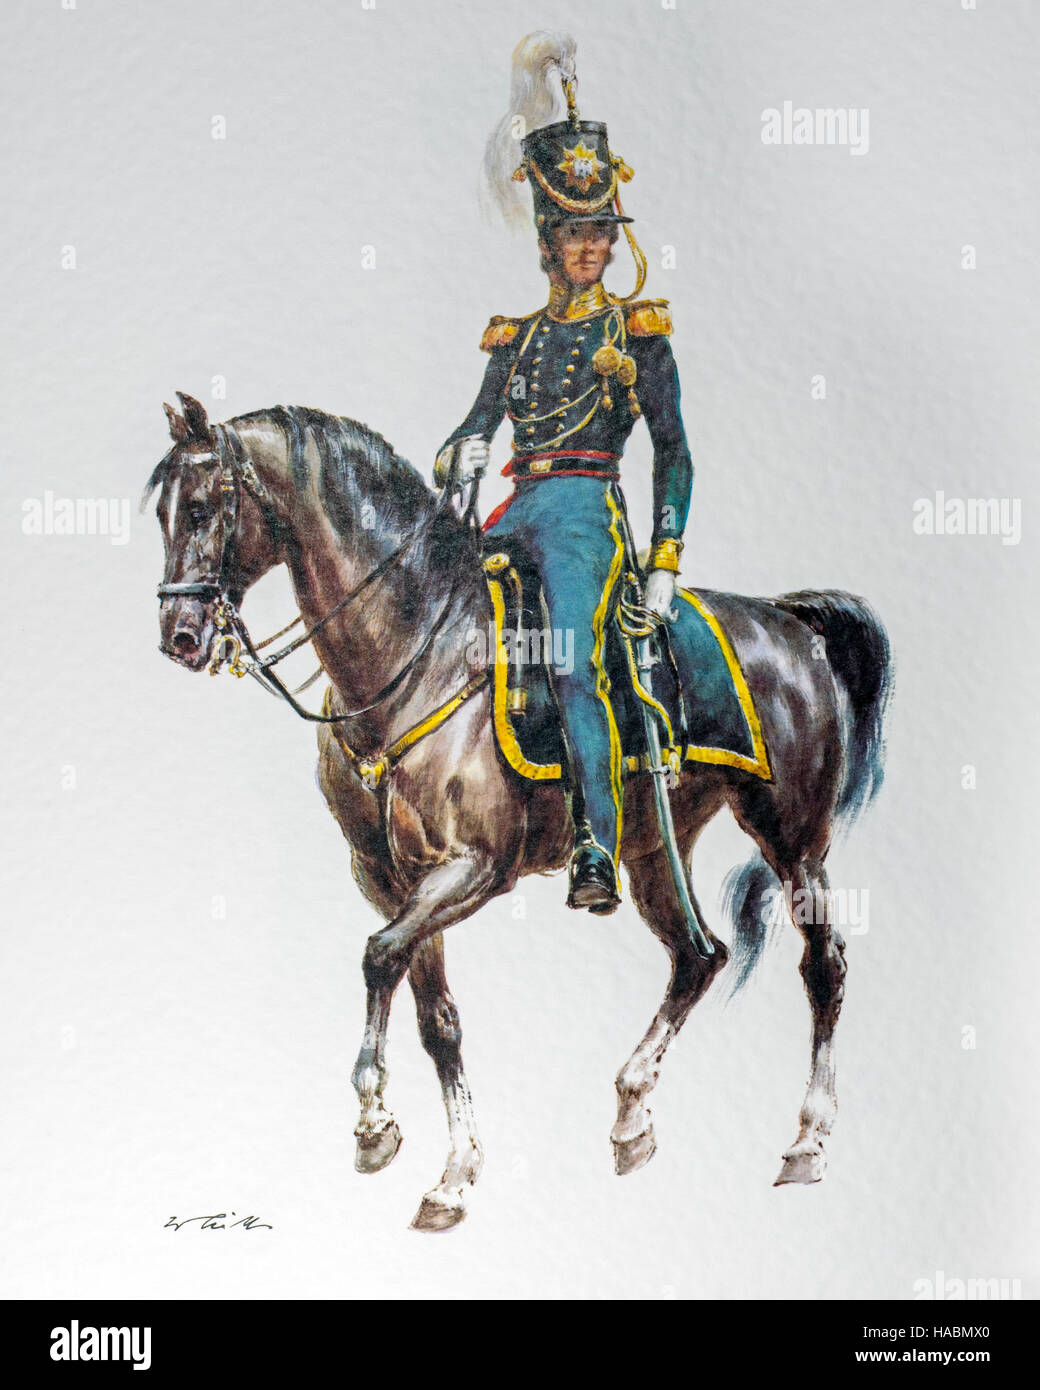 American officer on horseback in 1836 uniform of the United States Regiment of Dragoons - Stock Image